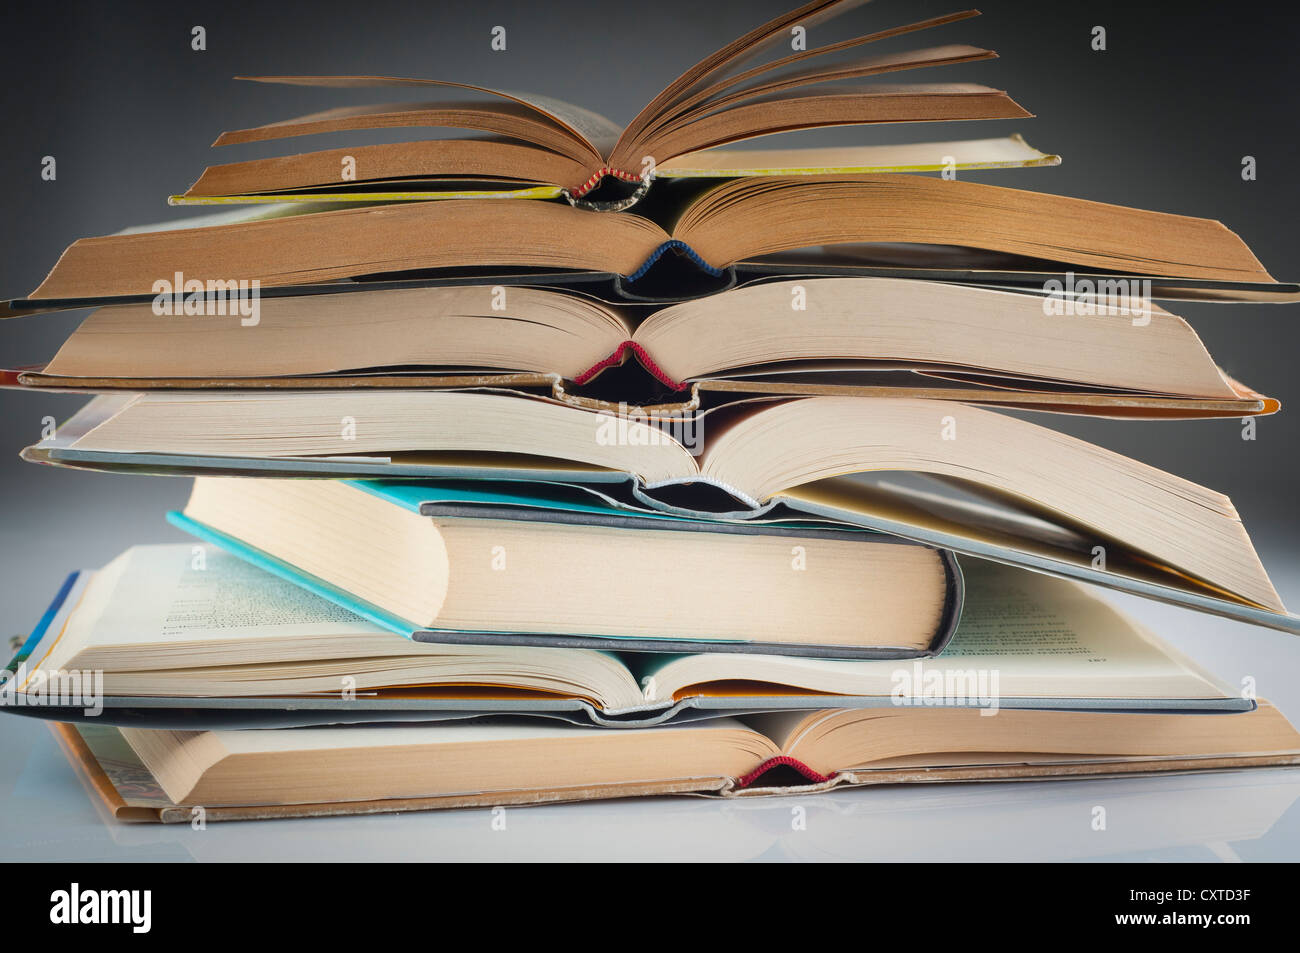 stacked books group to study and read - Stock Image